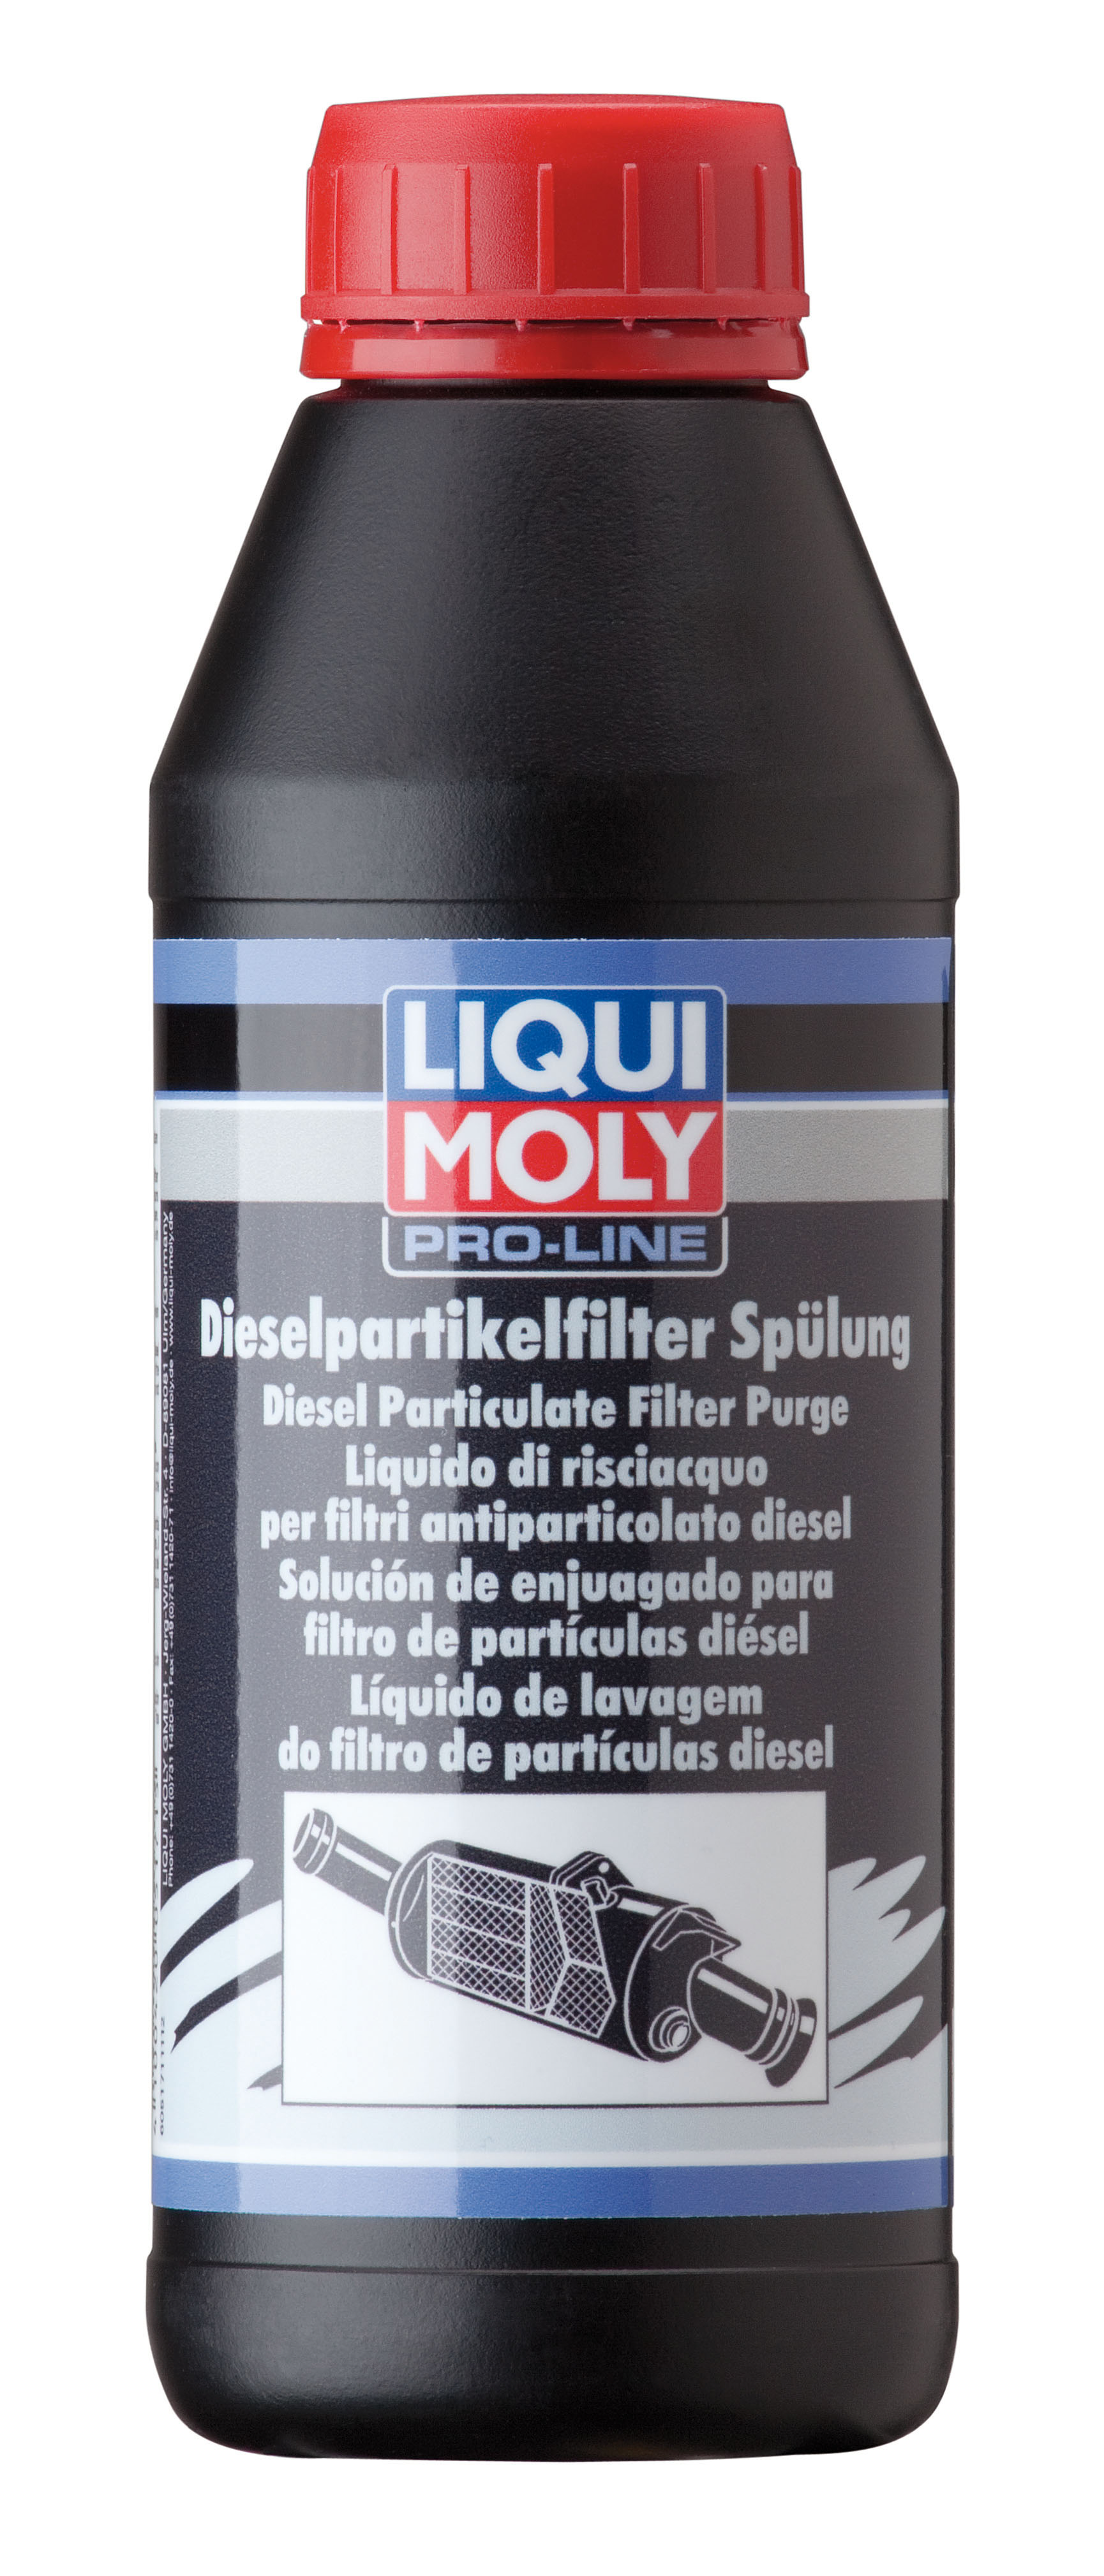 motoroel king liqui moly pro line diesel partikelfilter sp lung 500ml. Black Bedroom Furniture Sets. Home Design Ideas